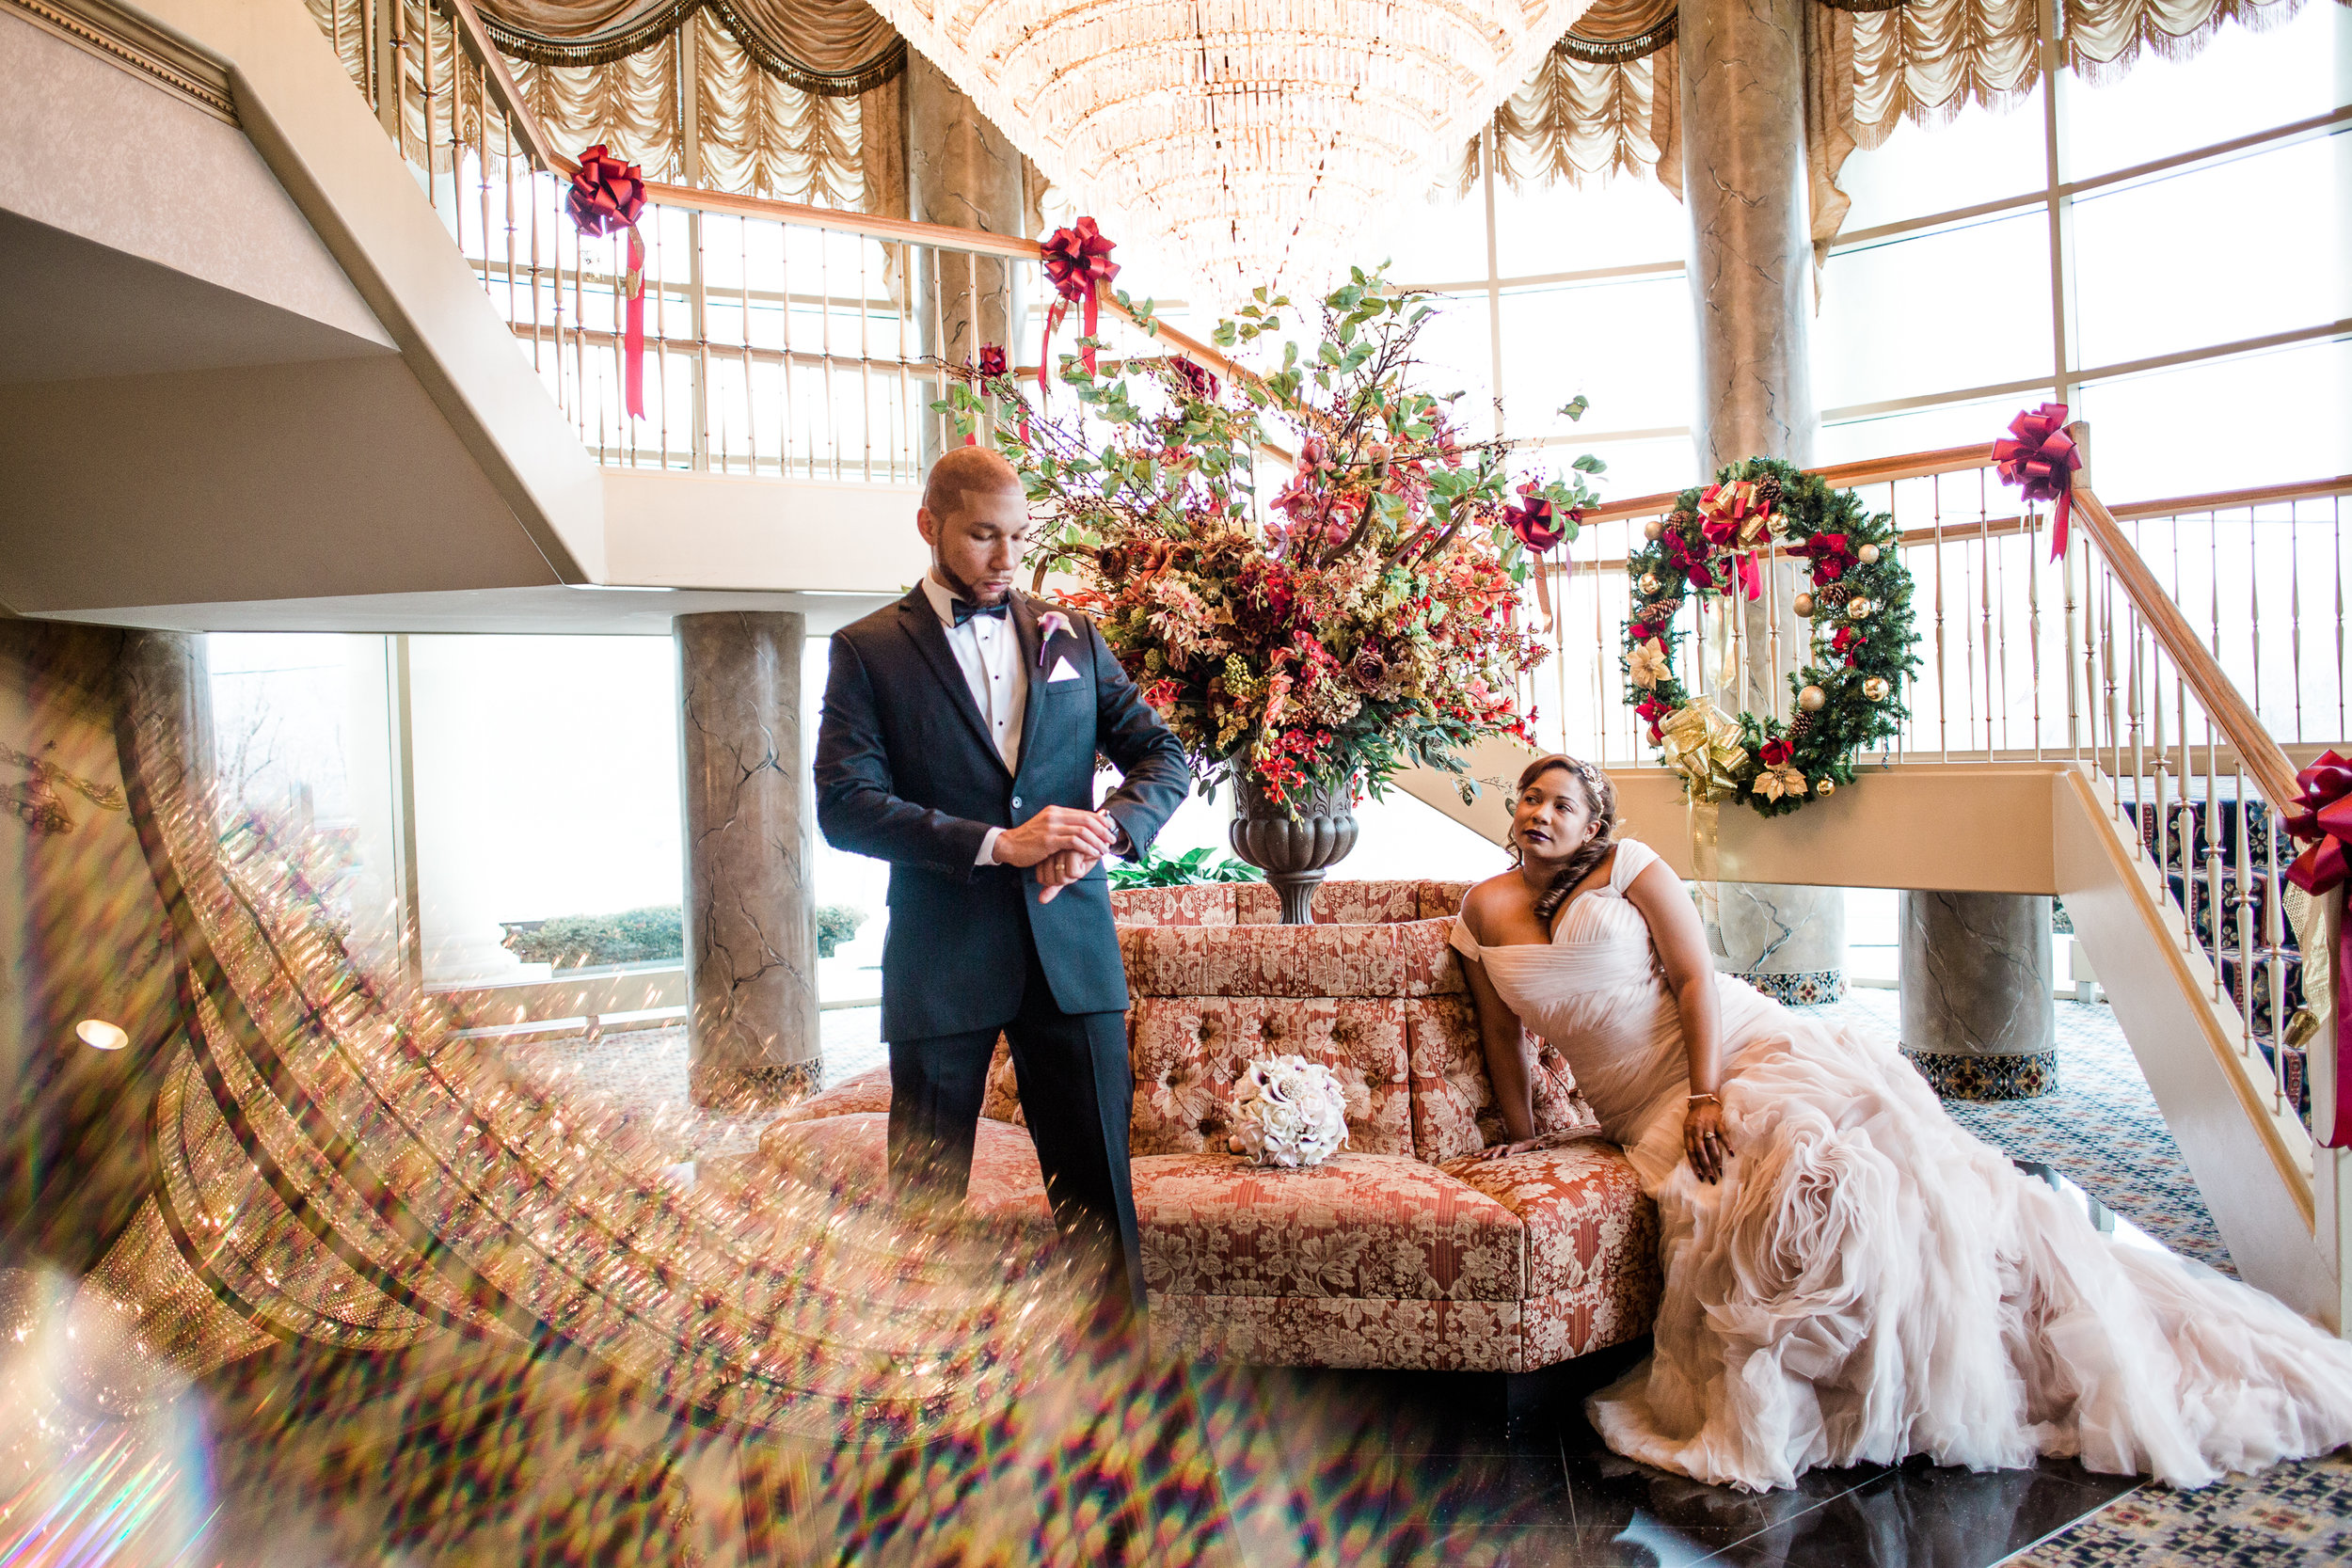 Martins West Baltimore Maryland Wedding Megapixels Media